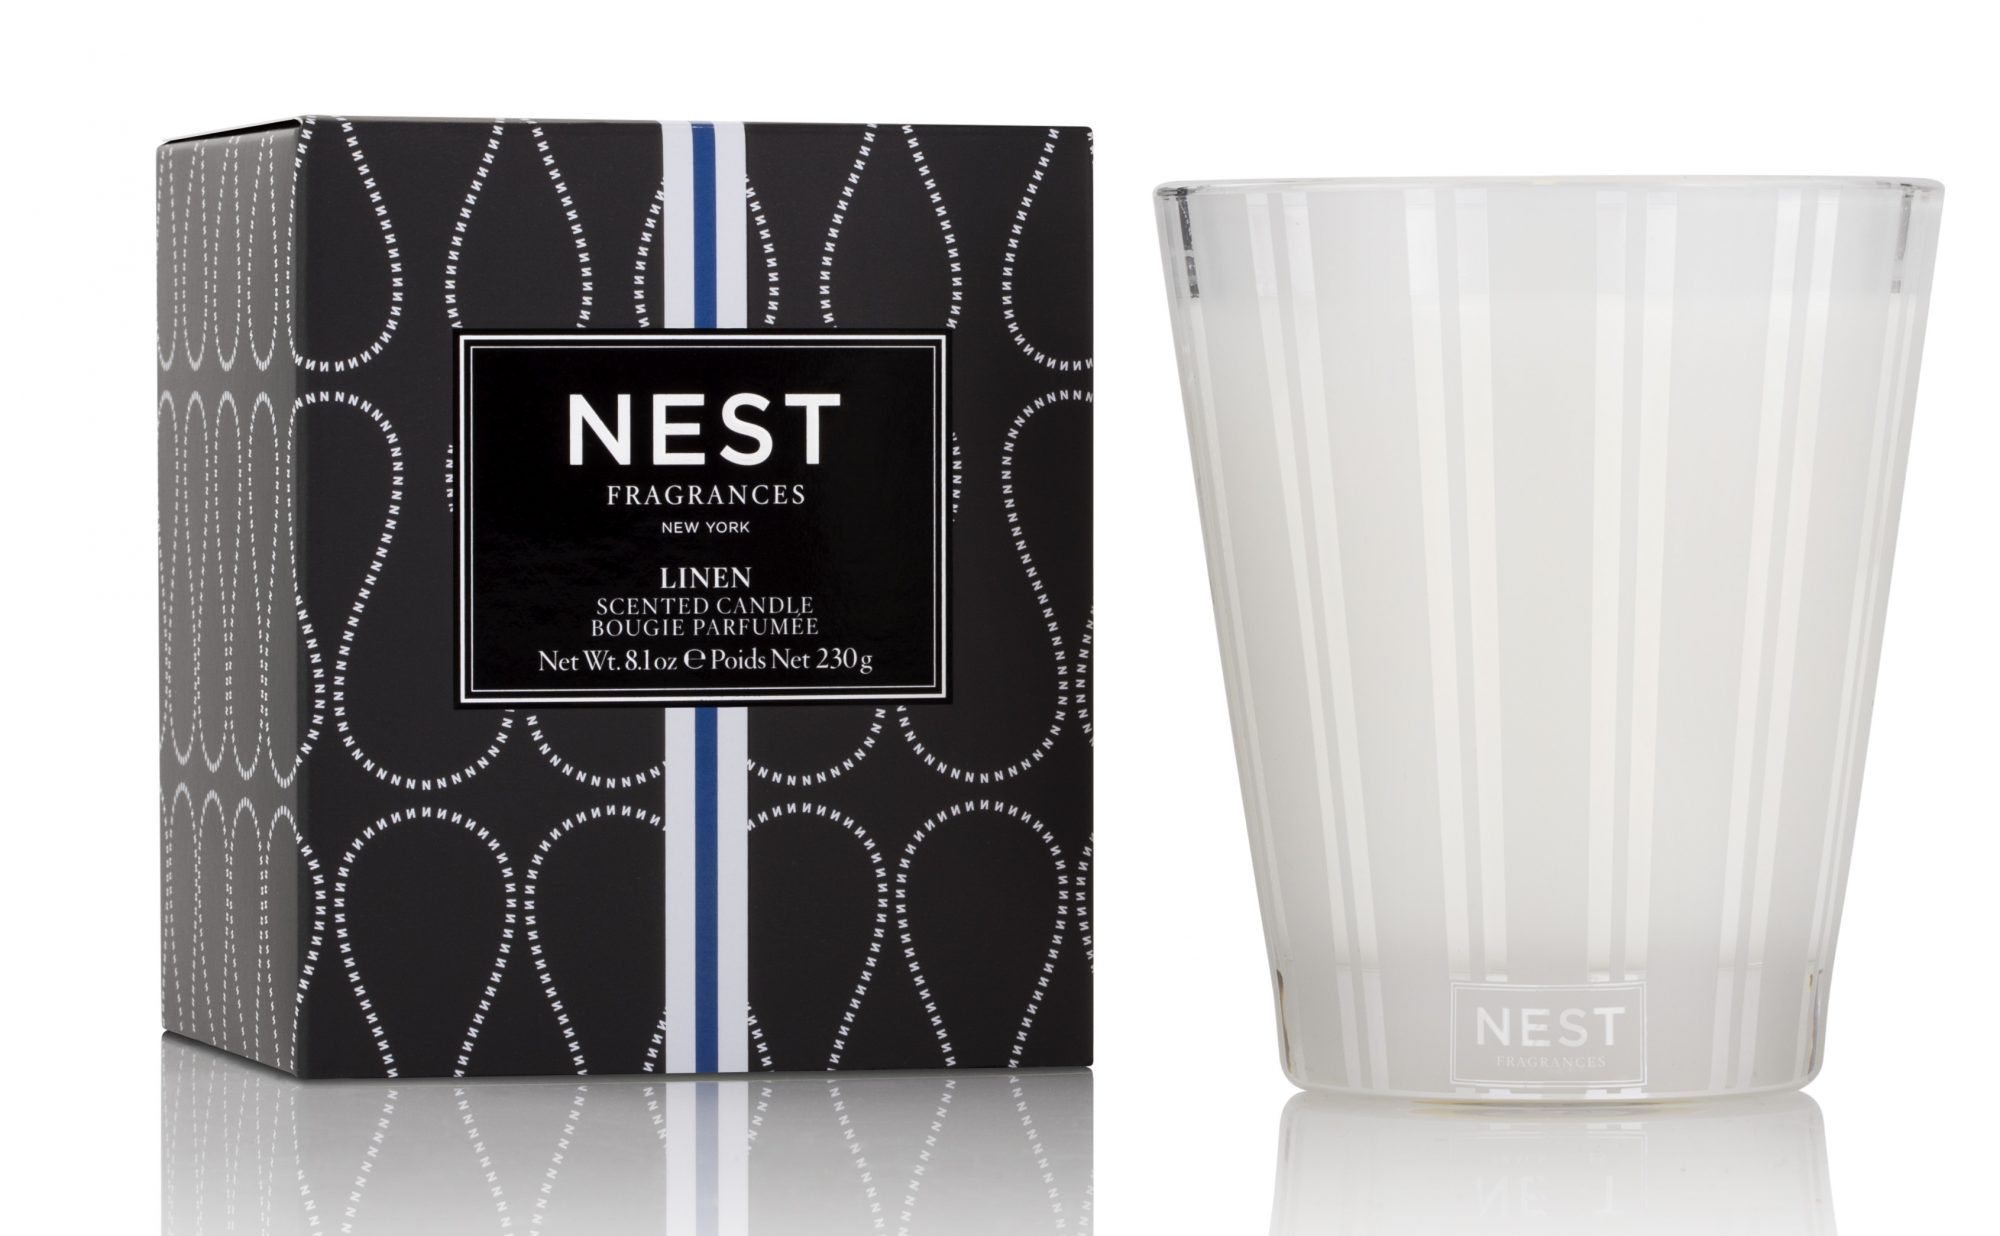 NEST Fragrances - Linen Classic Candle